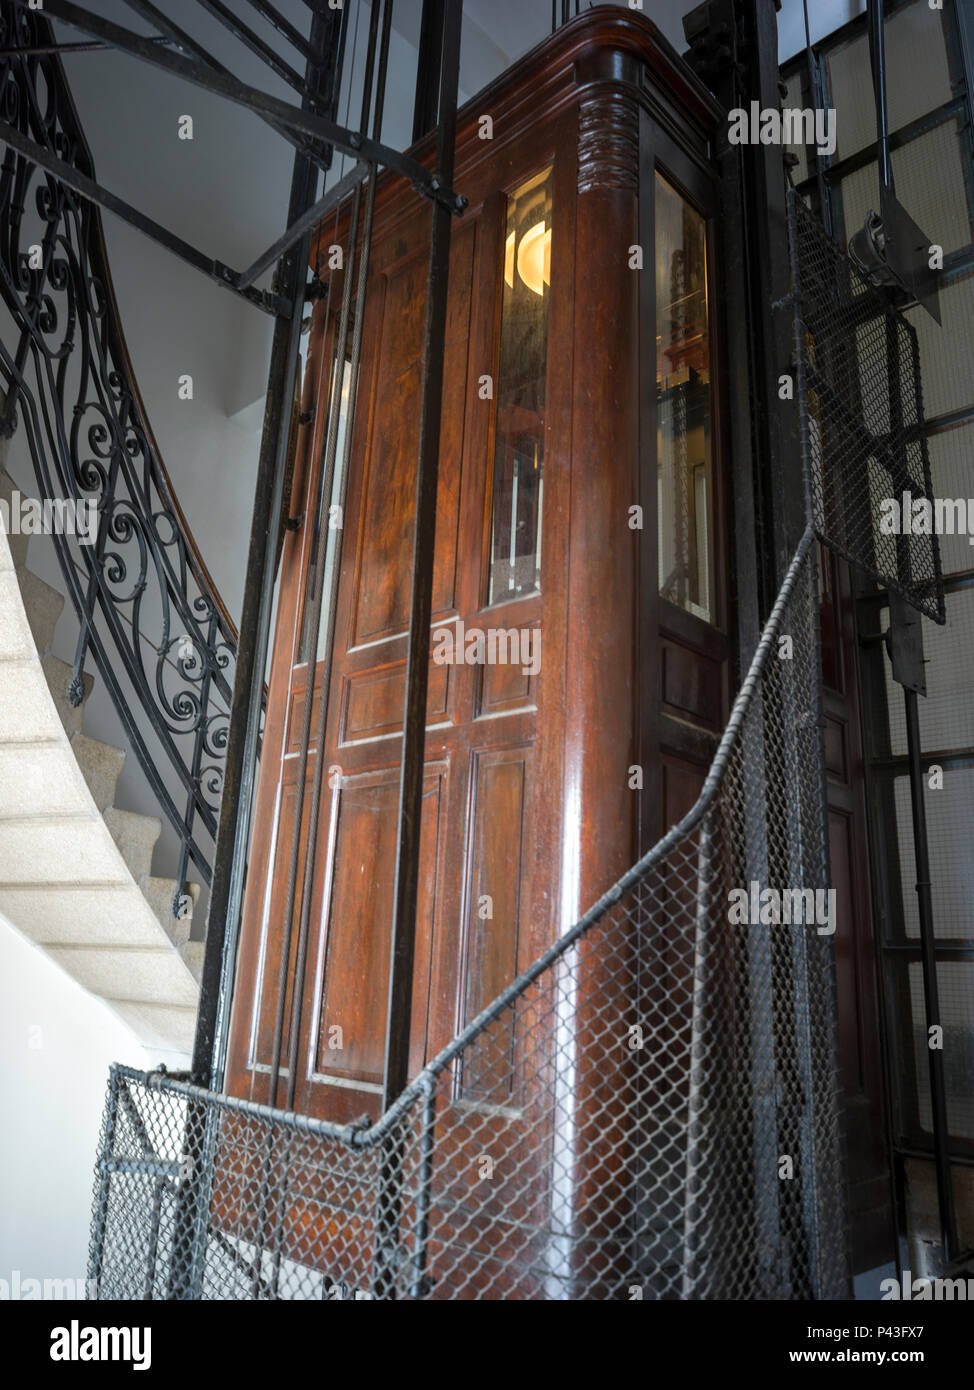 Wooden Elevator Next To A Staircase, Belgrade, Serbia